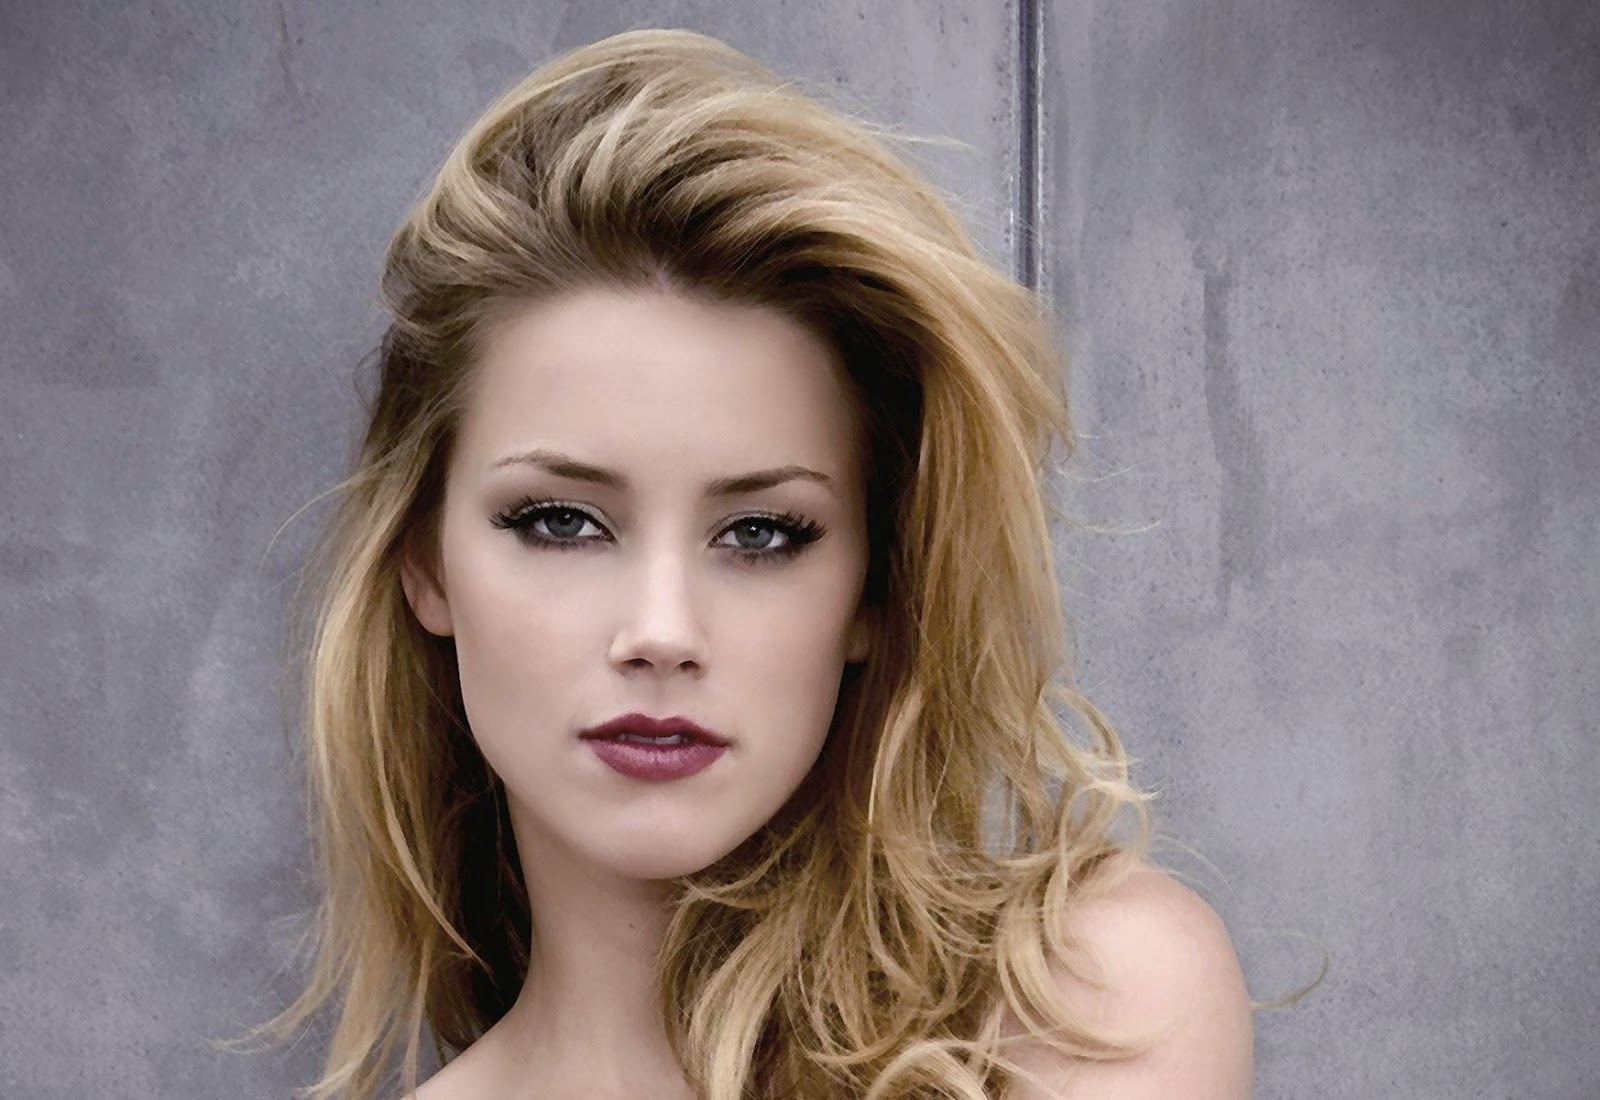 Amber Heard Hd: Picture World: Amber Heard Hd Wallpapers Free Download